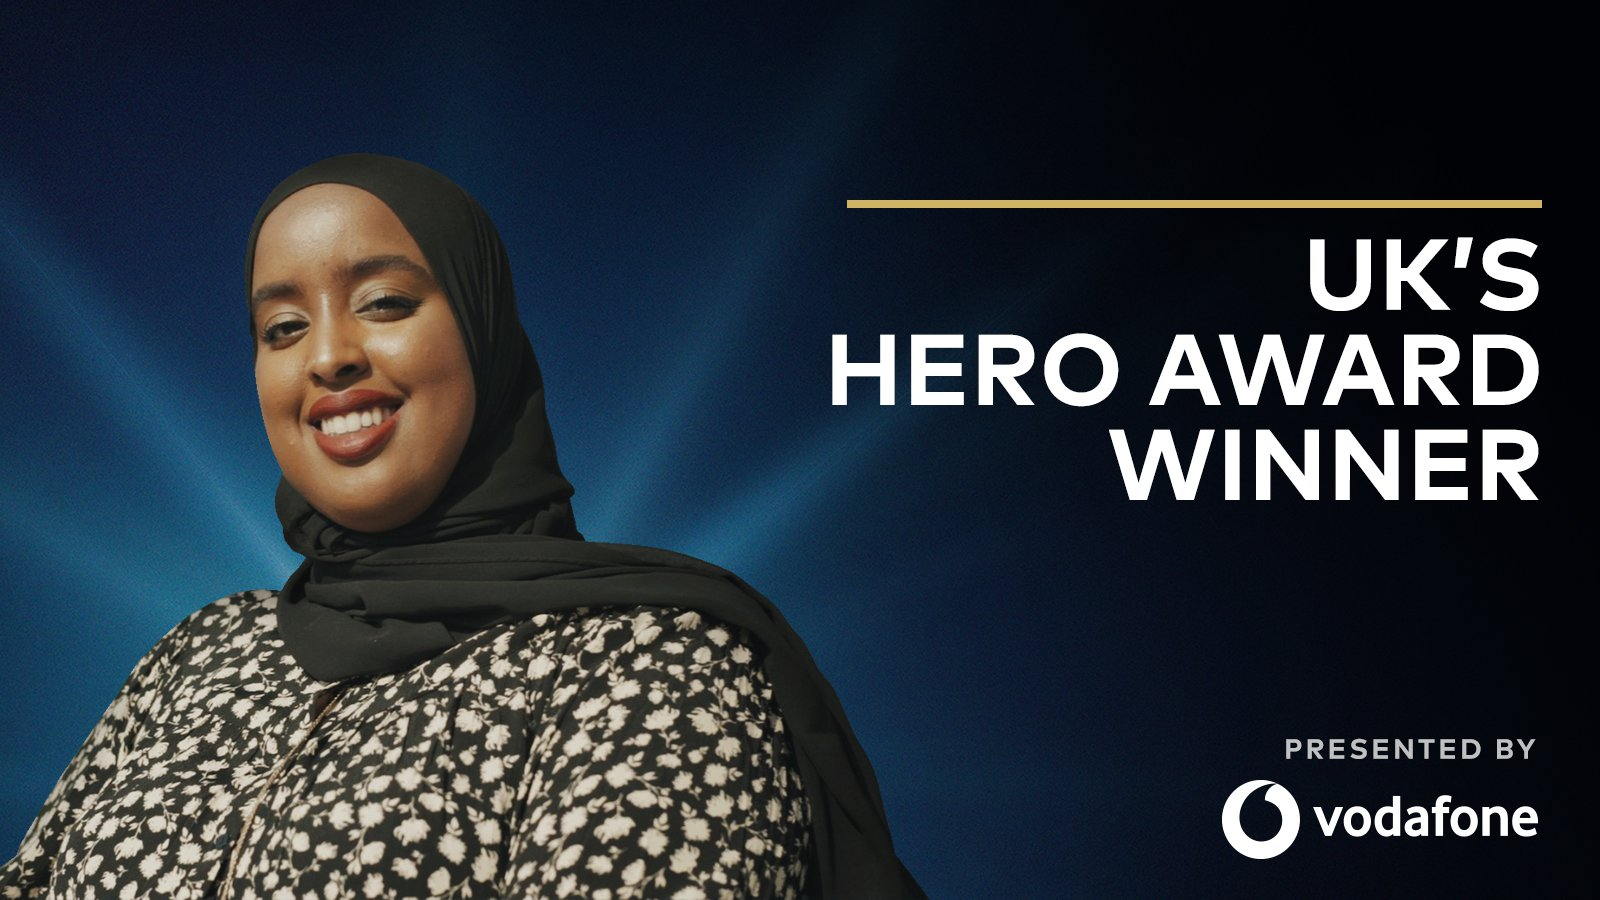 UK's Hero Award